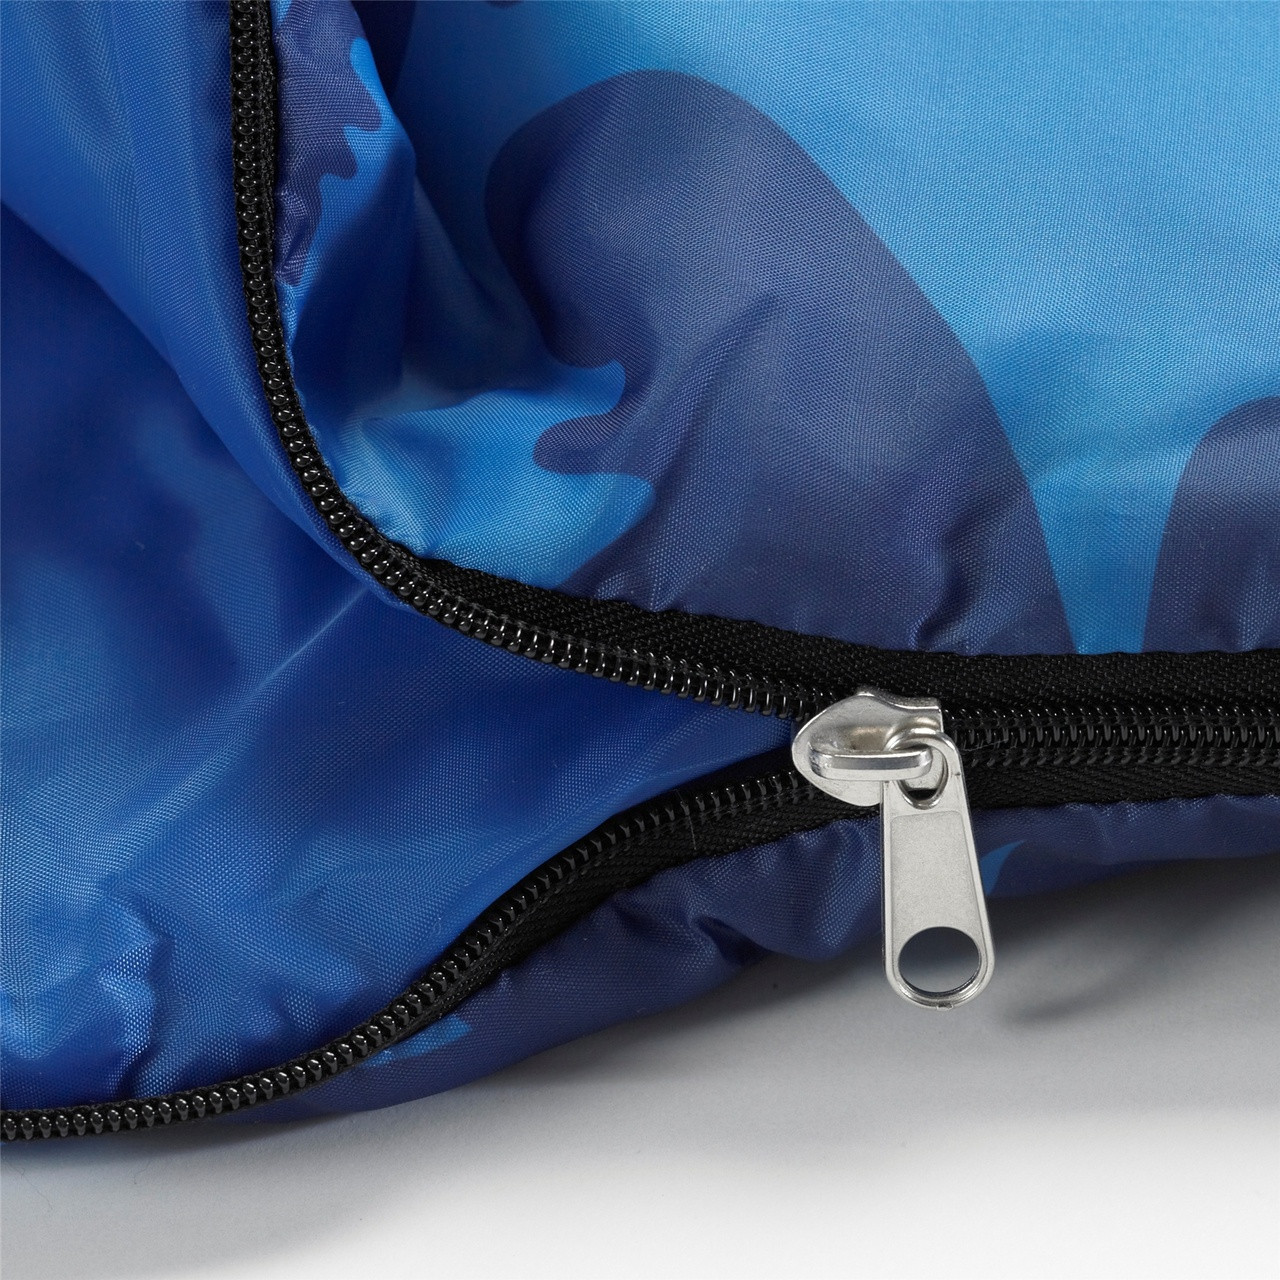 Close up view of the zipper partially unzipped on the Wenzel Kids Blue Moose 40 degree sleeping bag